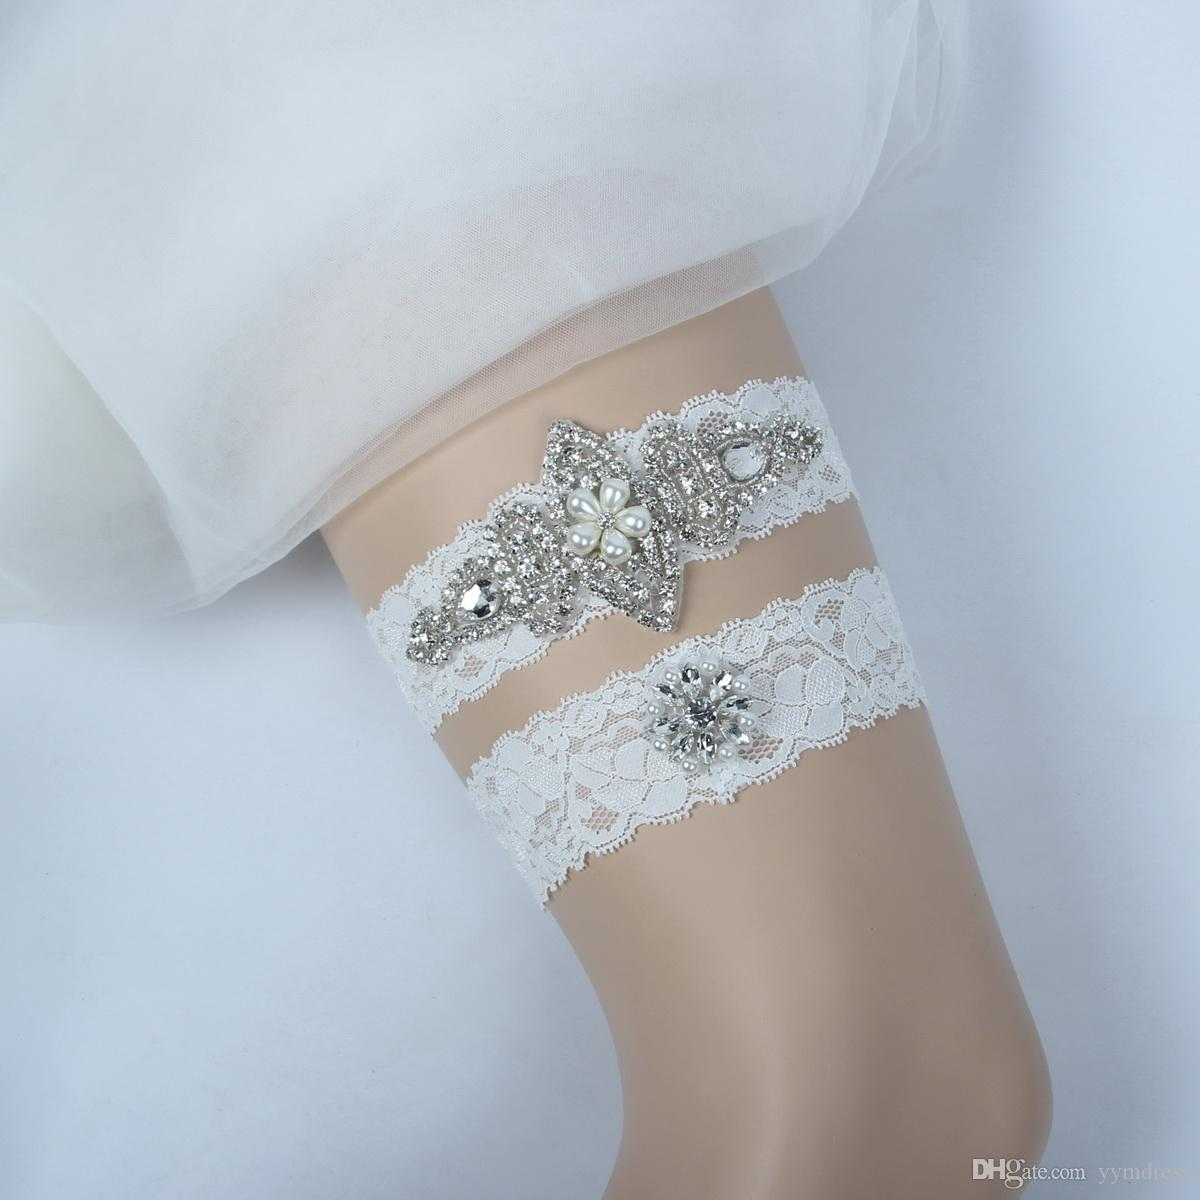 d761c268f Bridal Leg Garters Prom Garter Bridal Wedding Garter Belt Set Lace  Rhinestones Crystals Pearls In Stock Plus Size Personalized Garter  Personalized Wedding ...